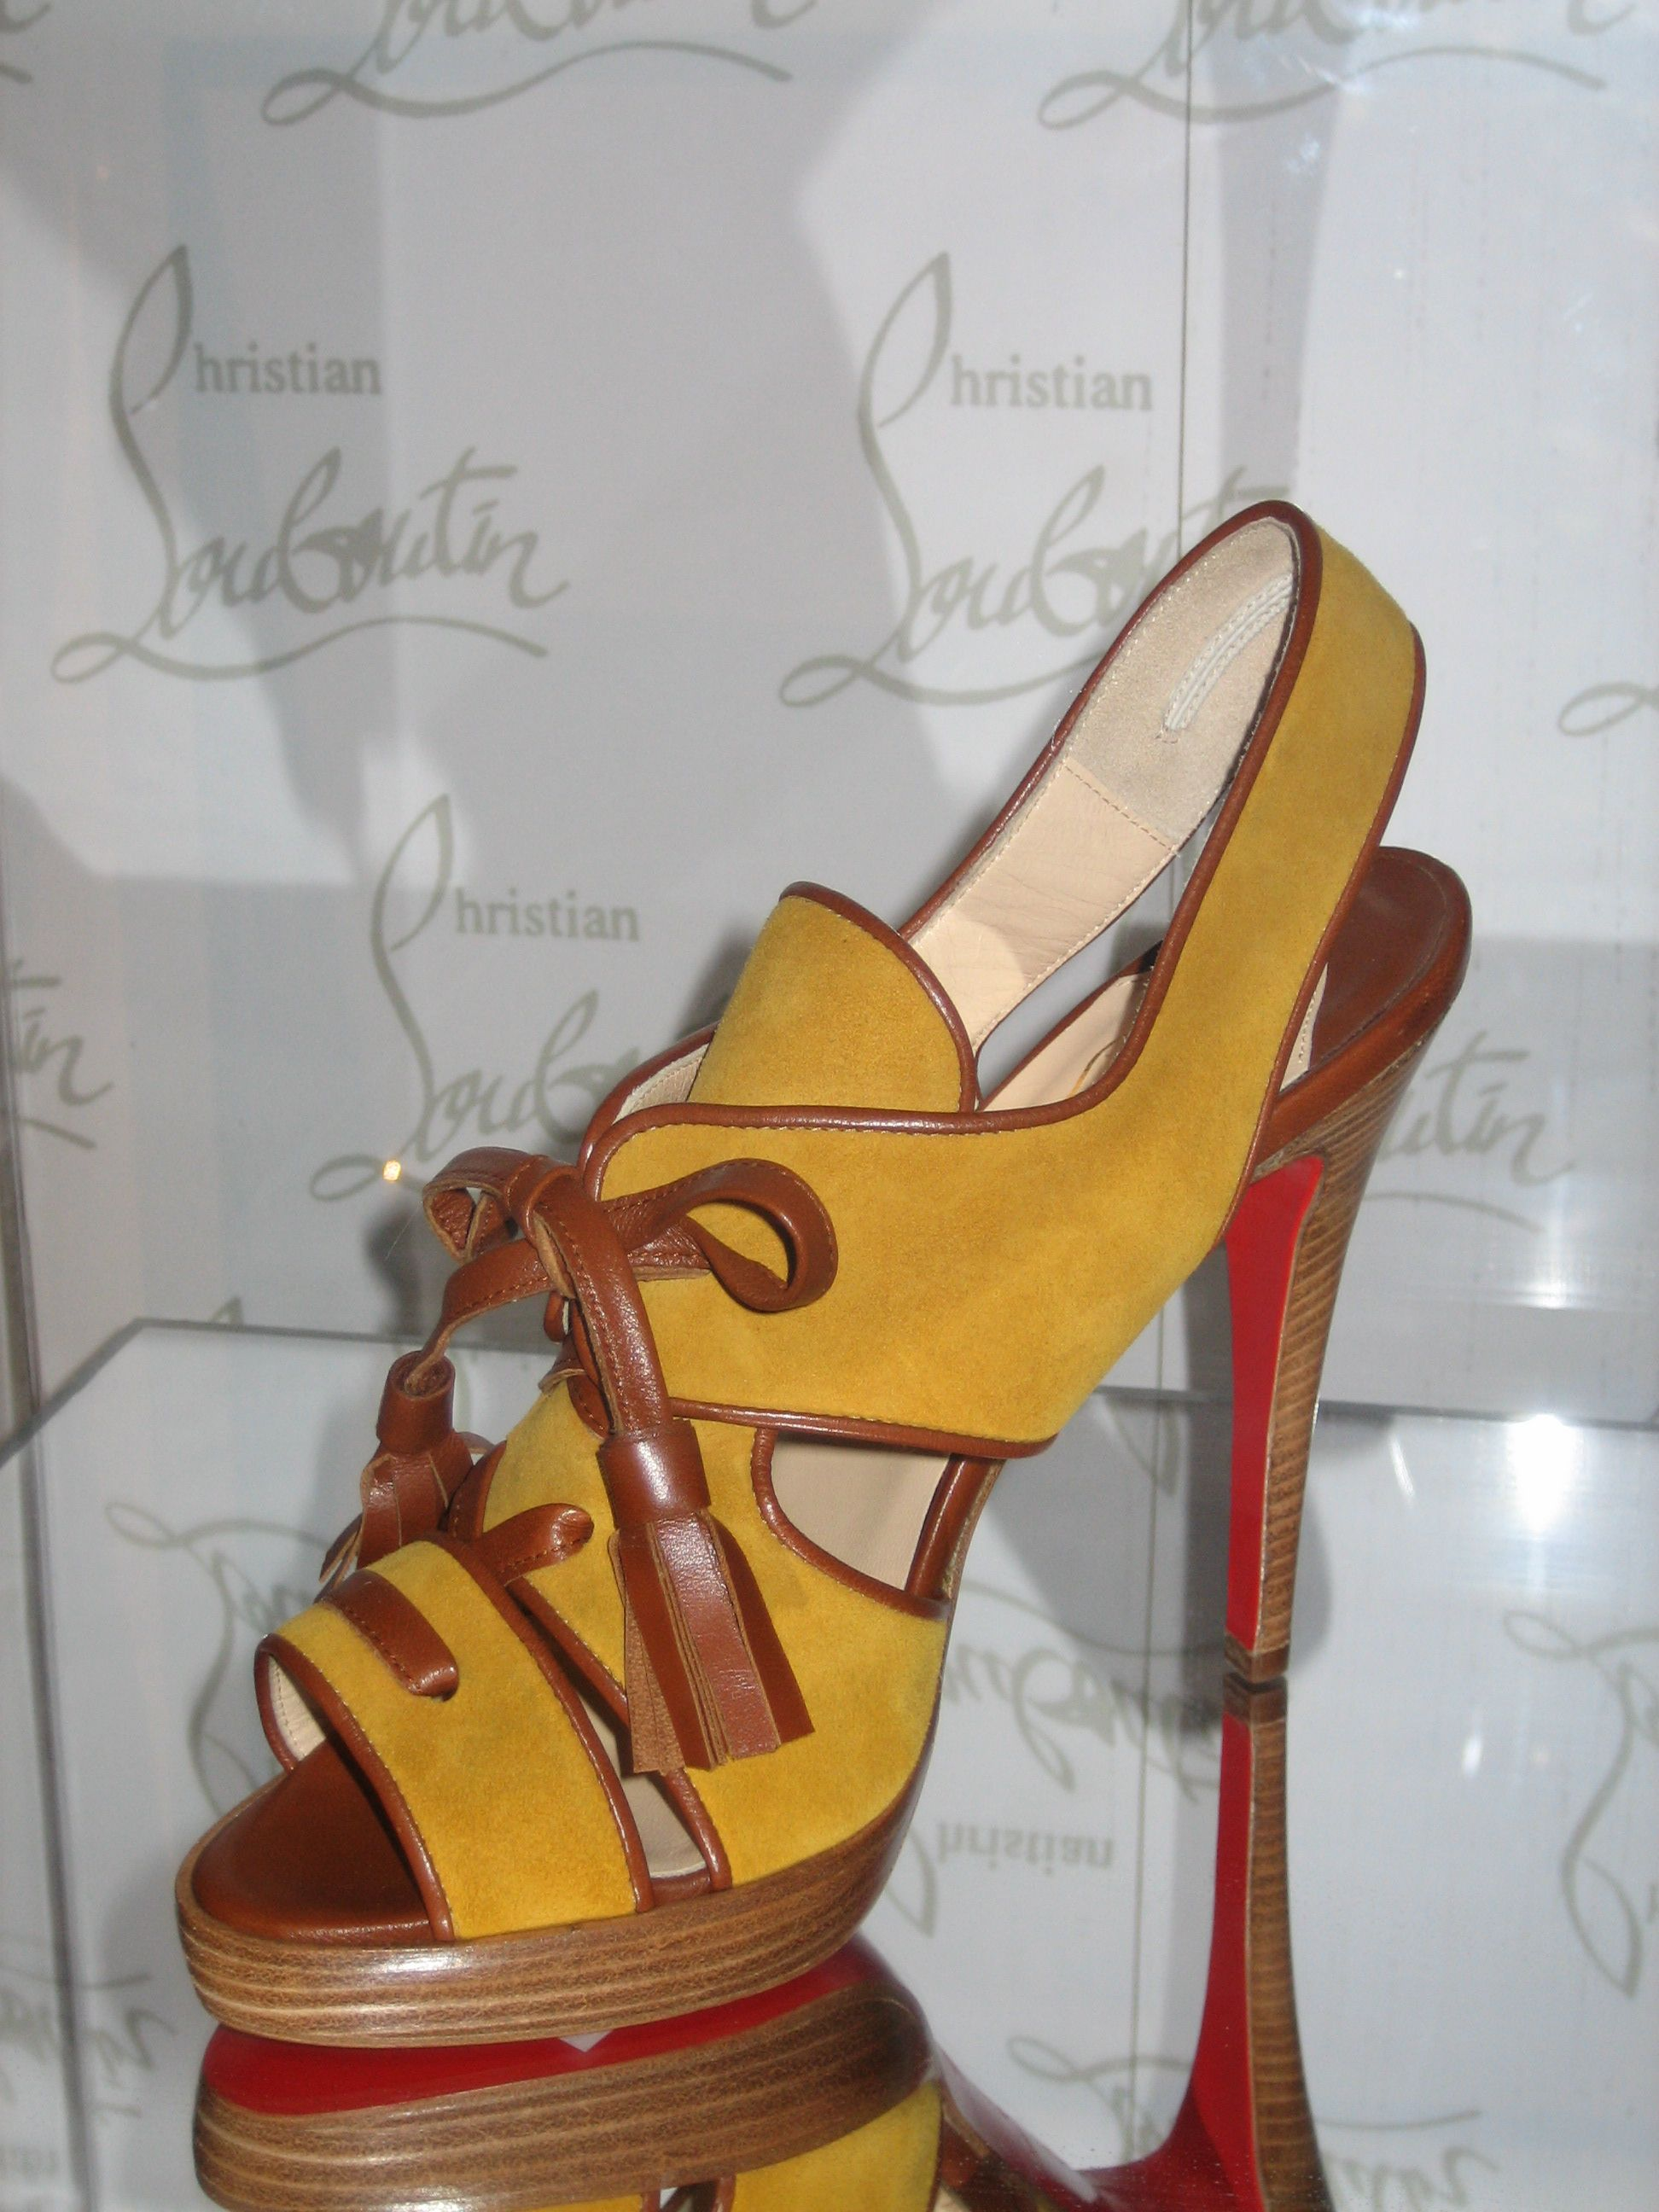 LagguageShoe by ChristianLouboutin